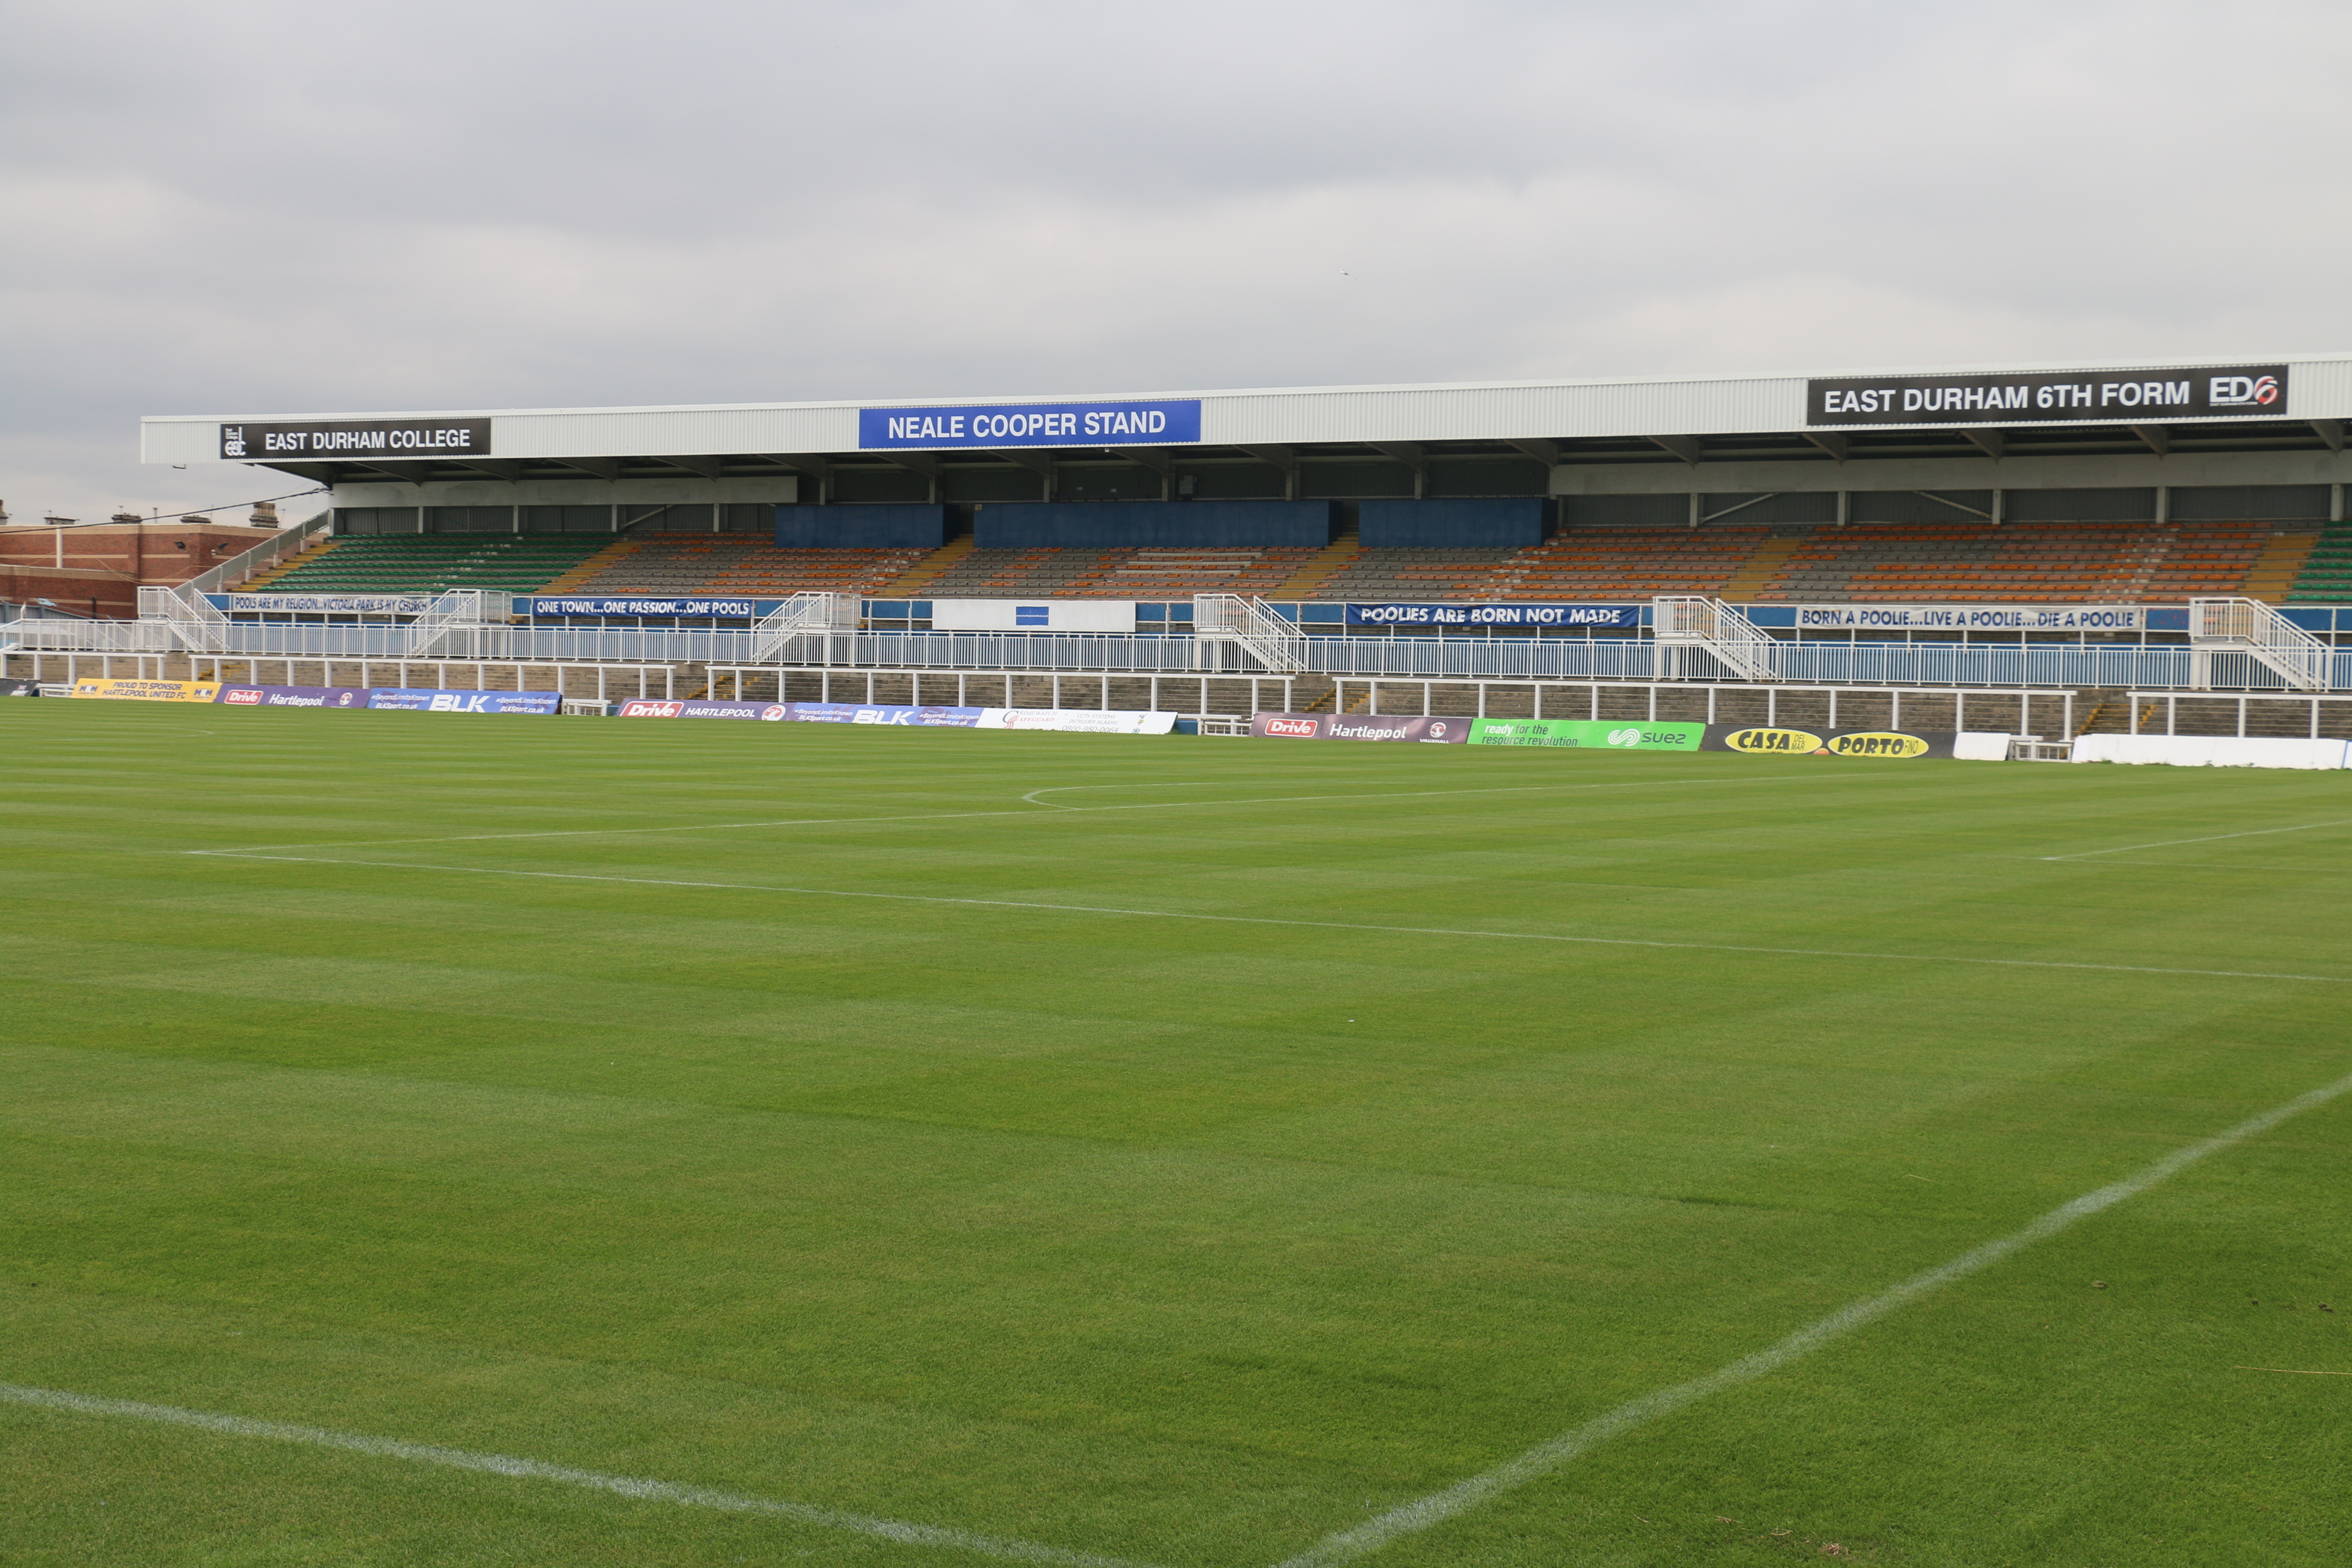 The Neale Cooper Stand